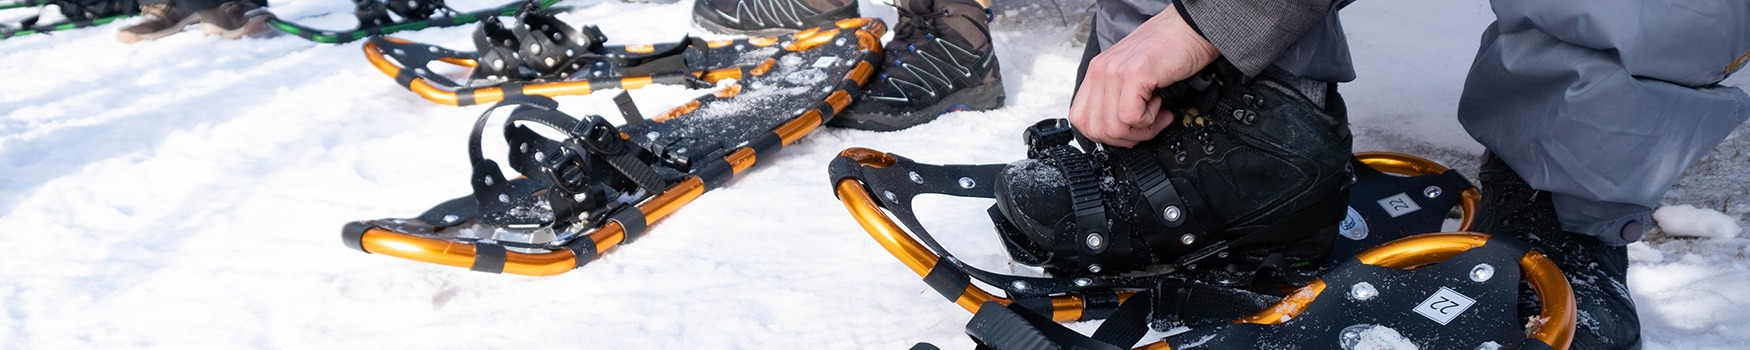 Participants feet are shown while they put on snowshoes during winter camp. They are located outdoors with snow covering the ground beneath them.